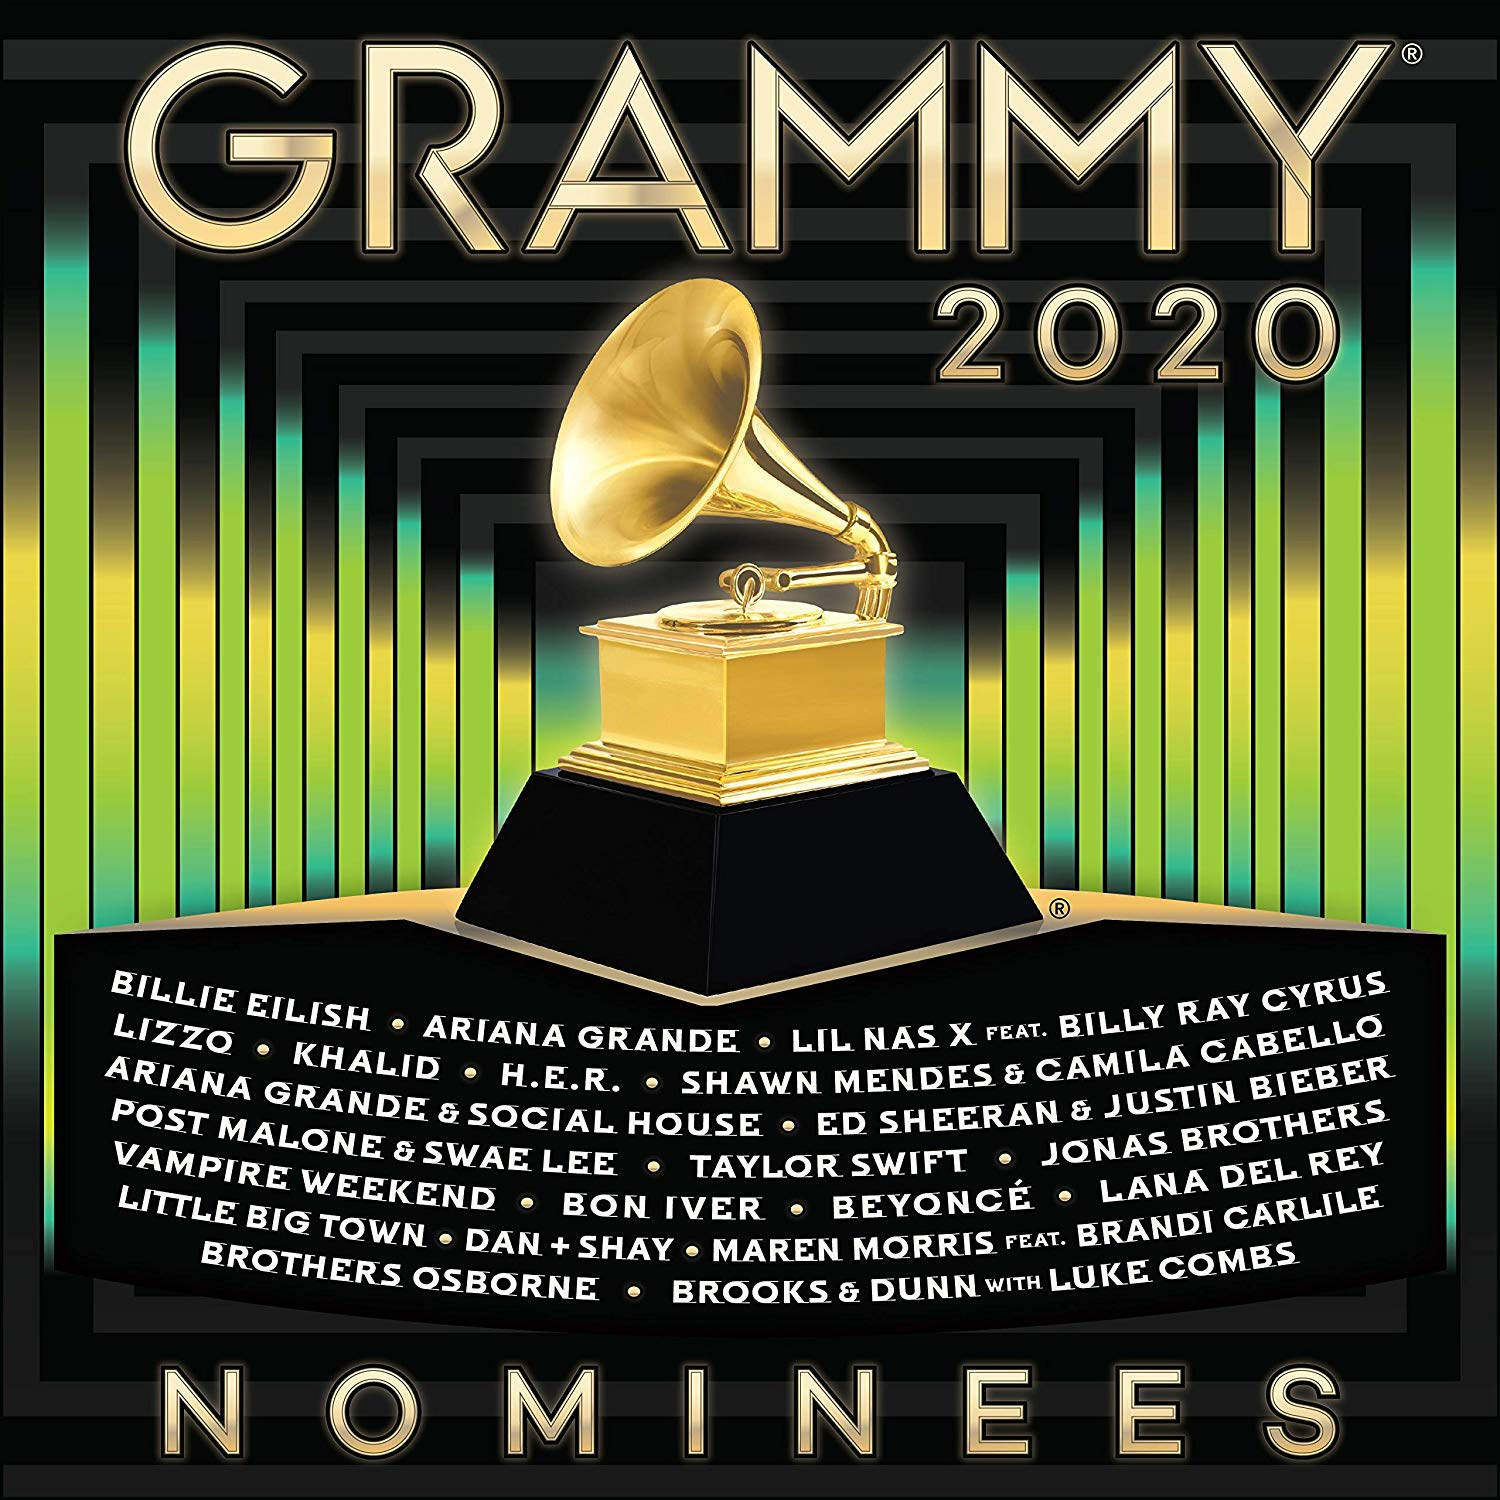 2020 grammy nominees 2020 grammy nominees amazon com music 2020 grammy nominees